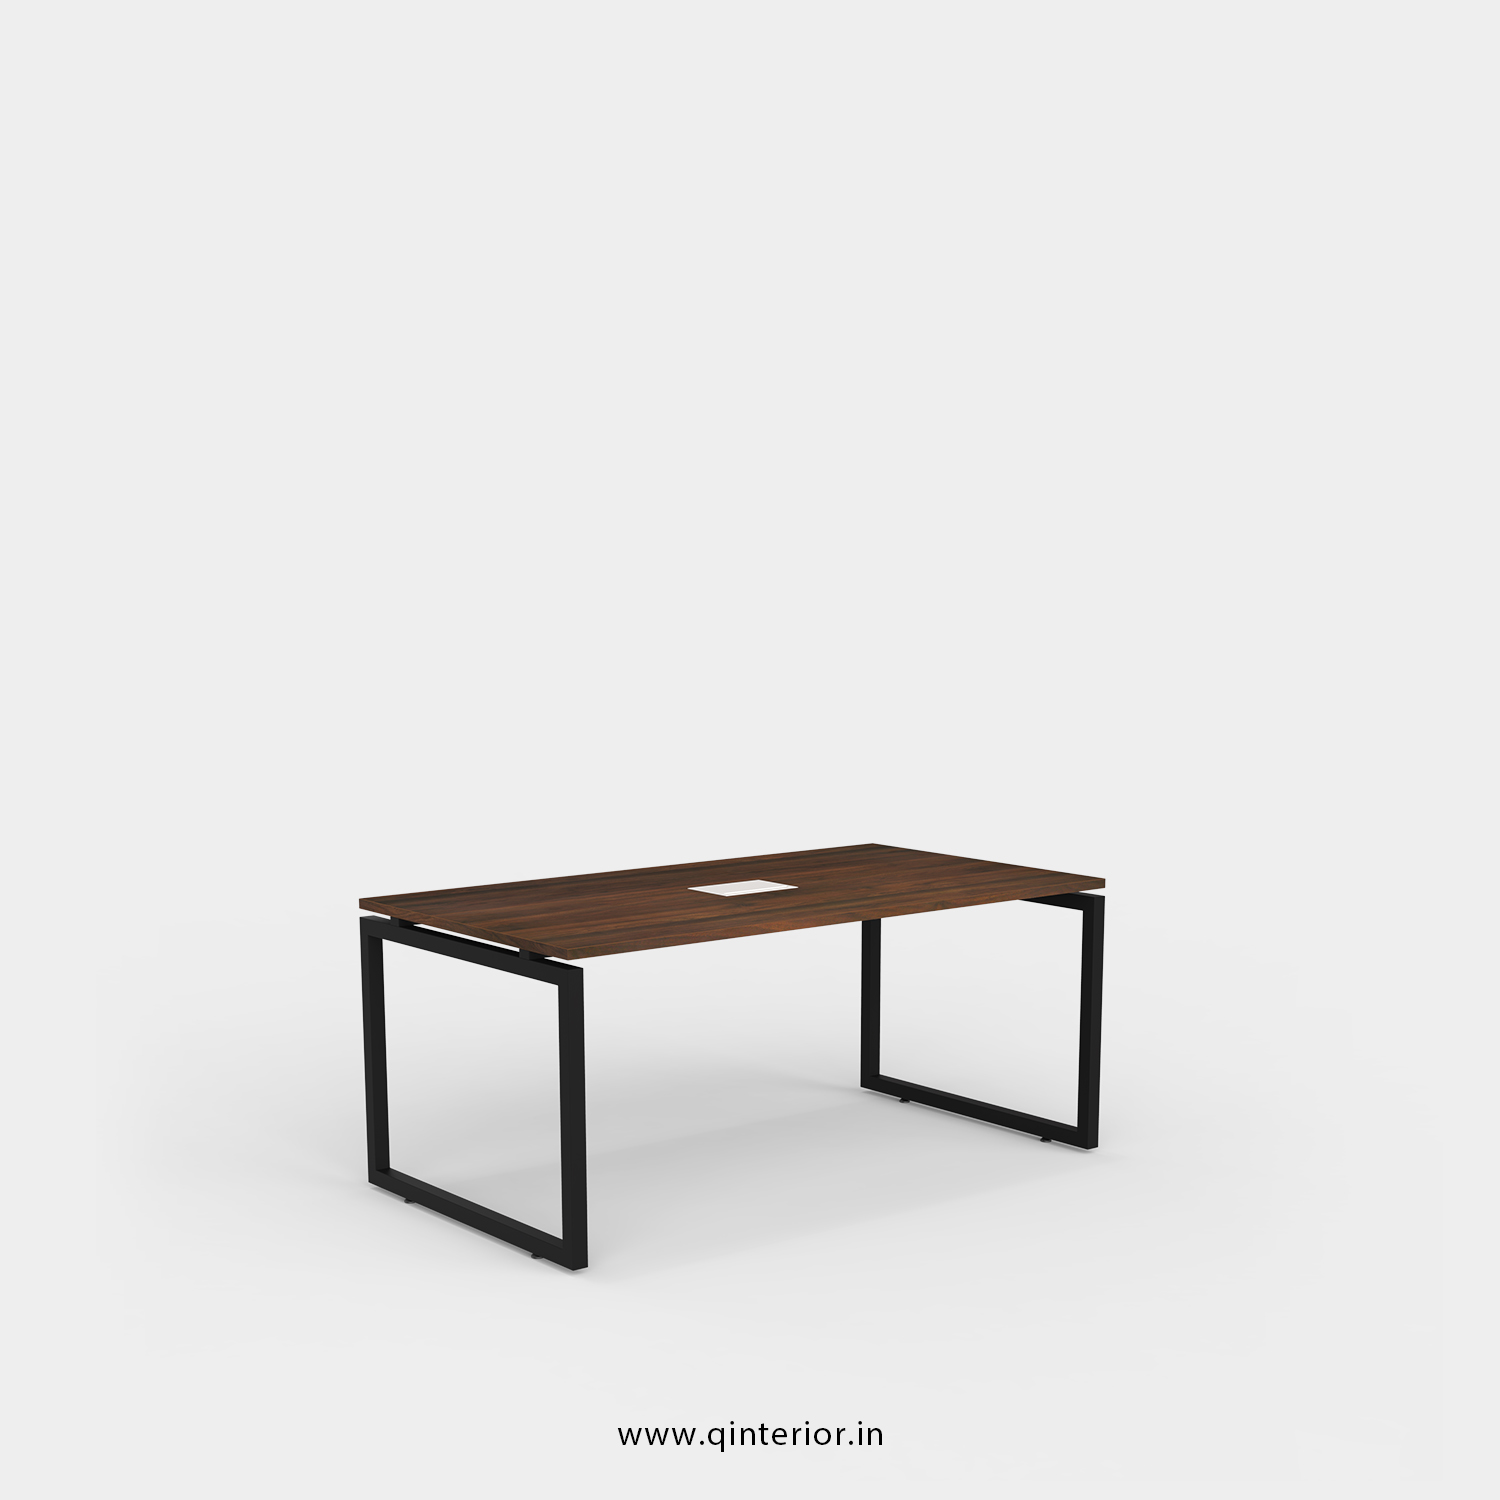 Aaron Meeting Table in Walnut Finish - OMT001 C1